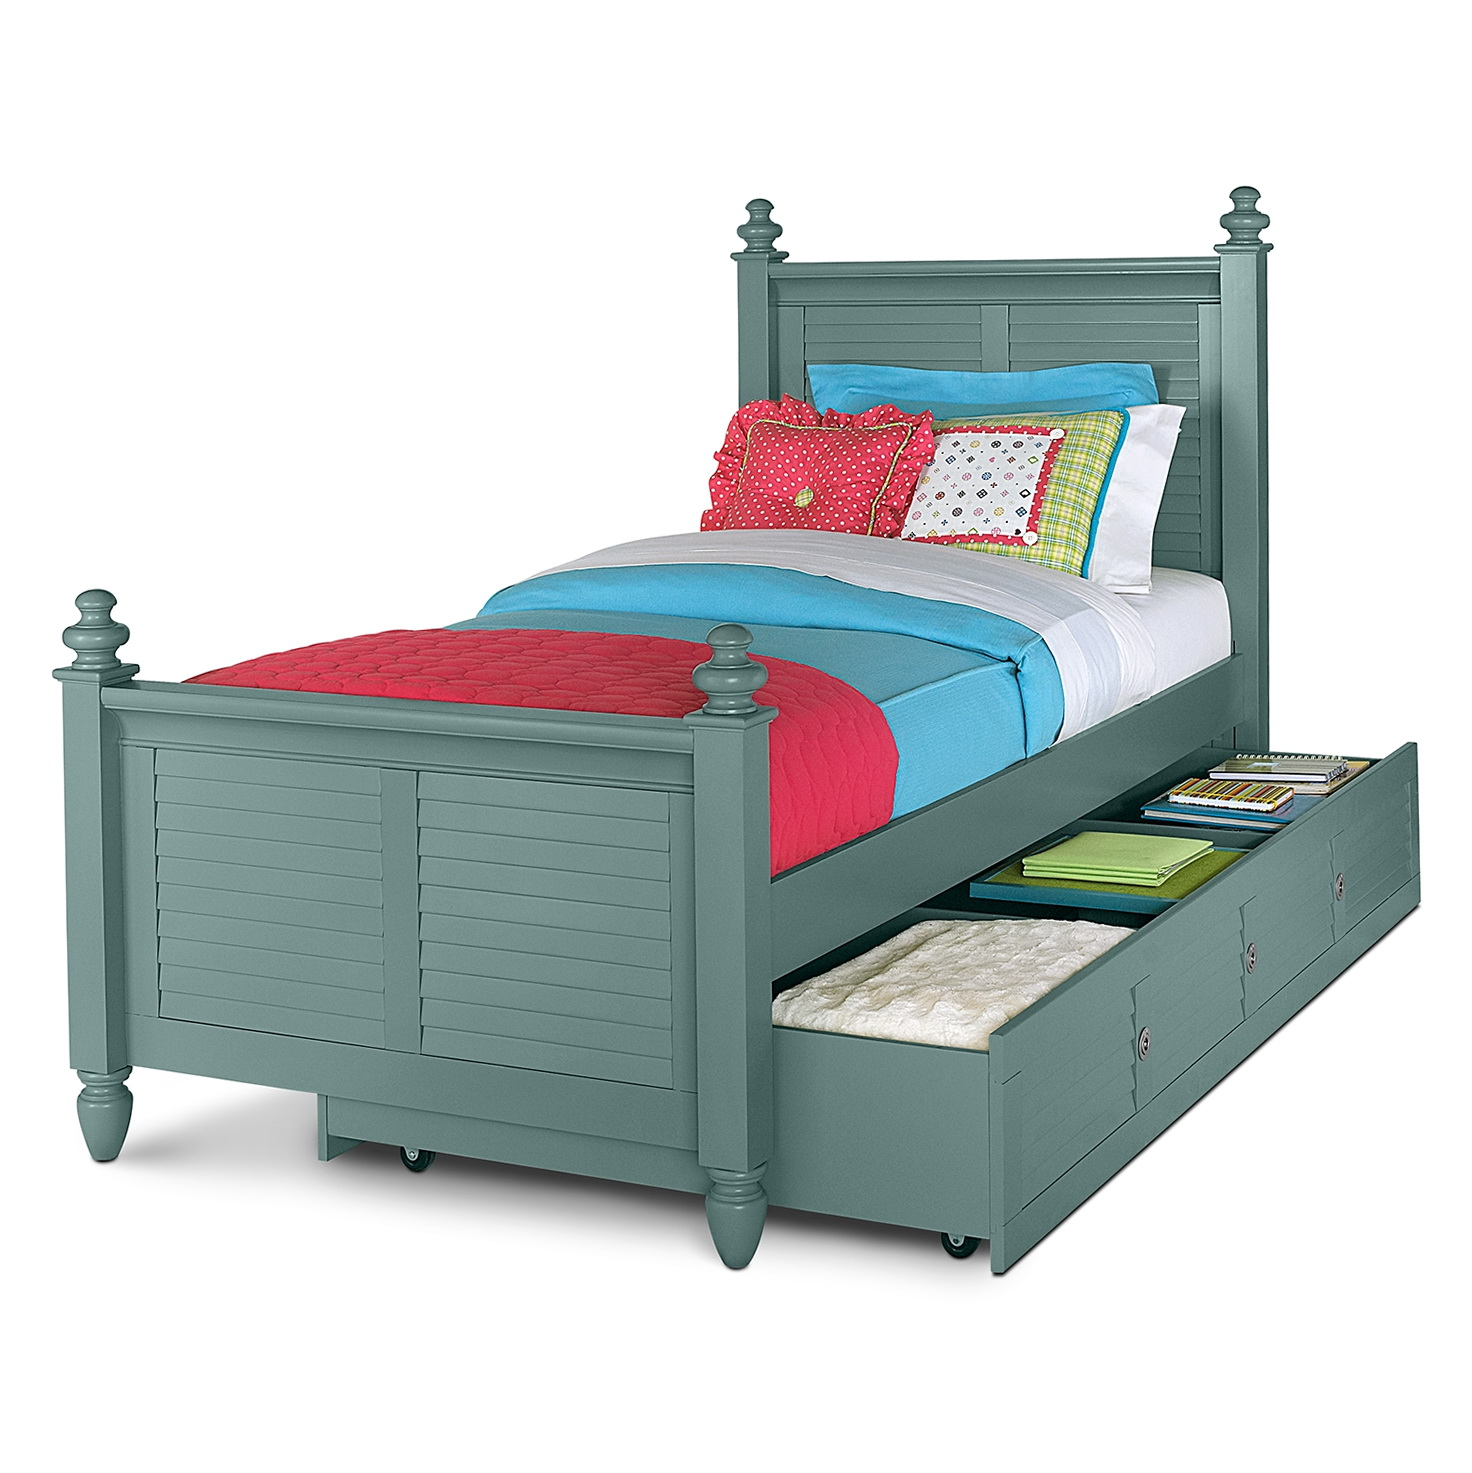 Full Trundle Beds For Kids